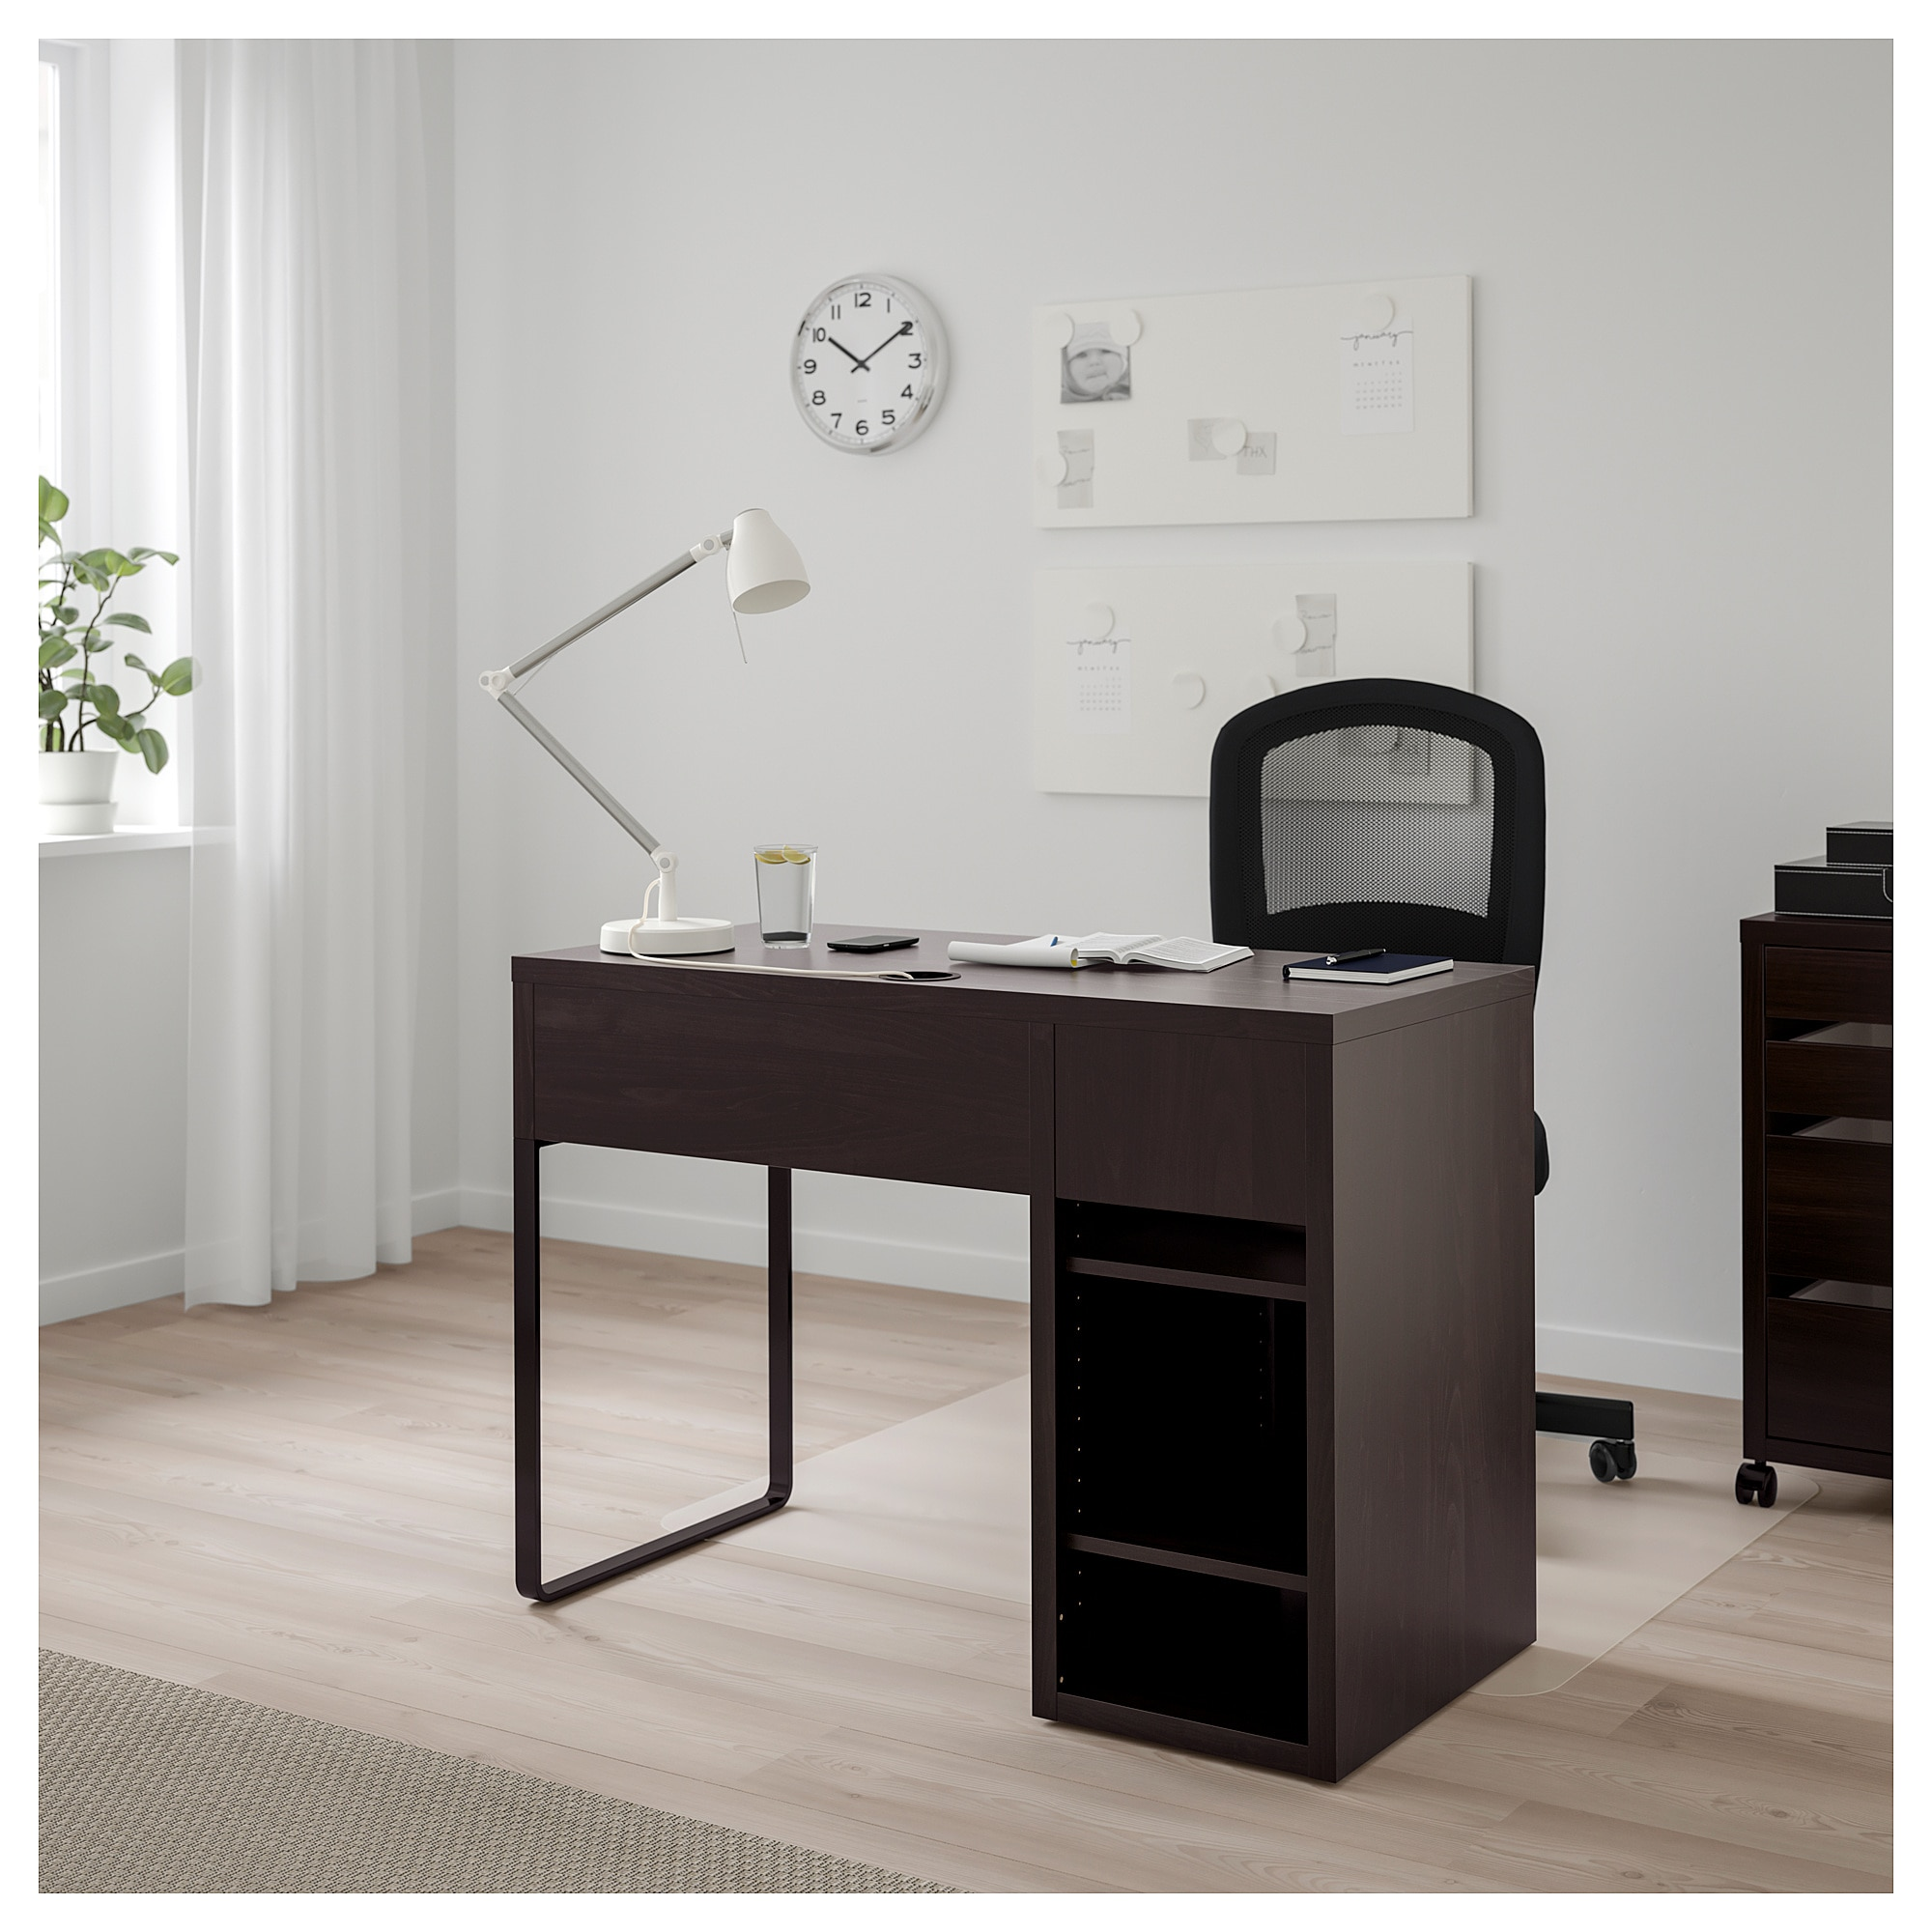 dartlist desk dresser furniture img chair sale